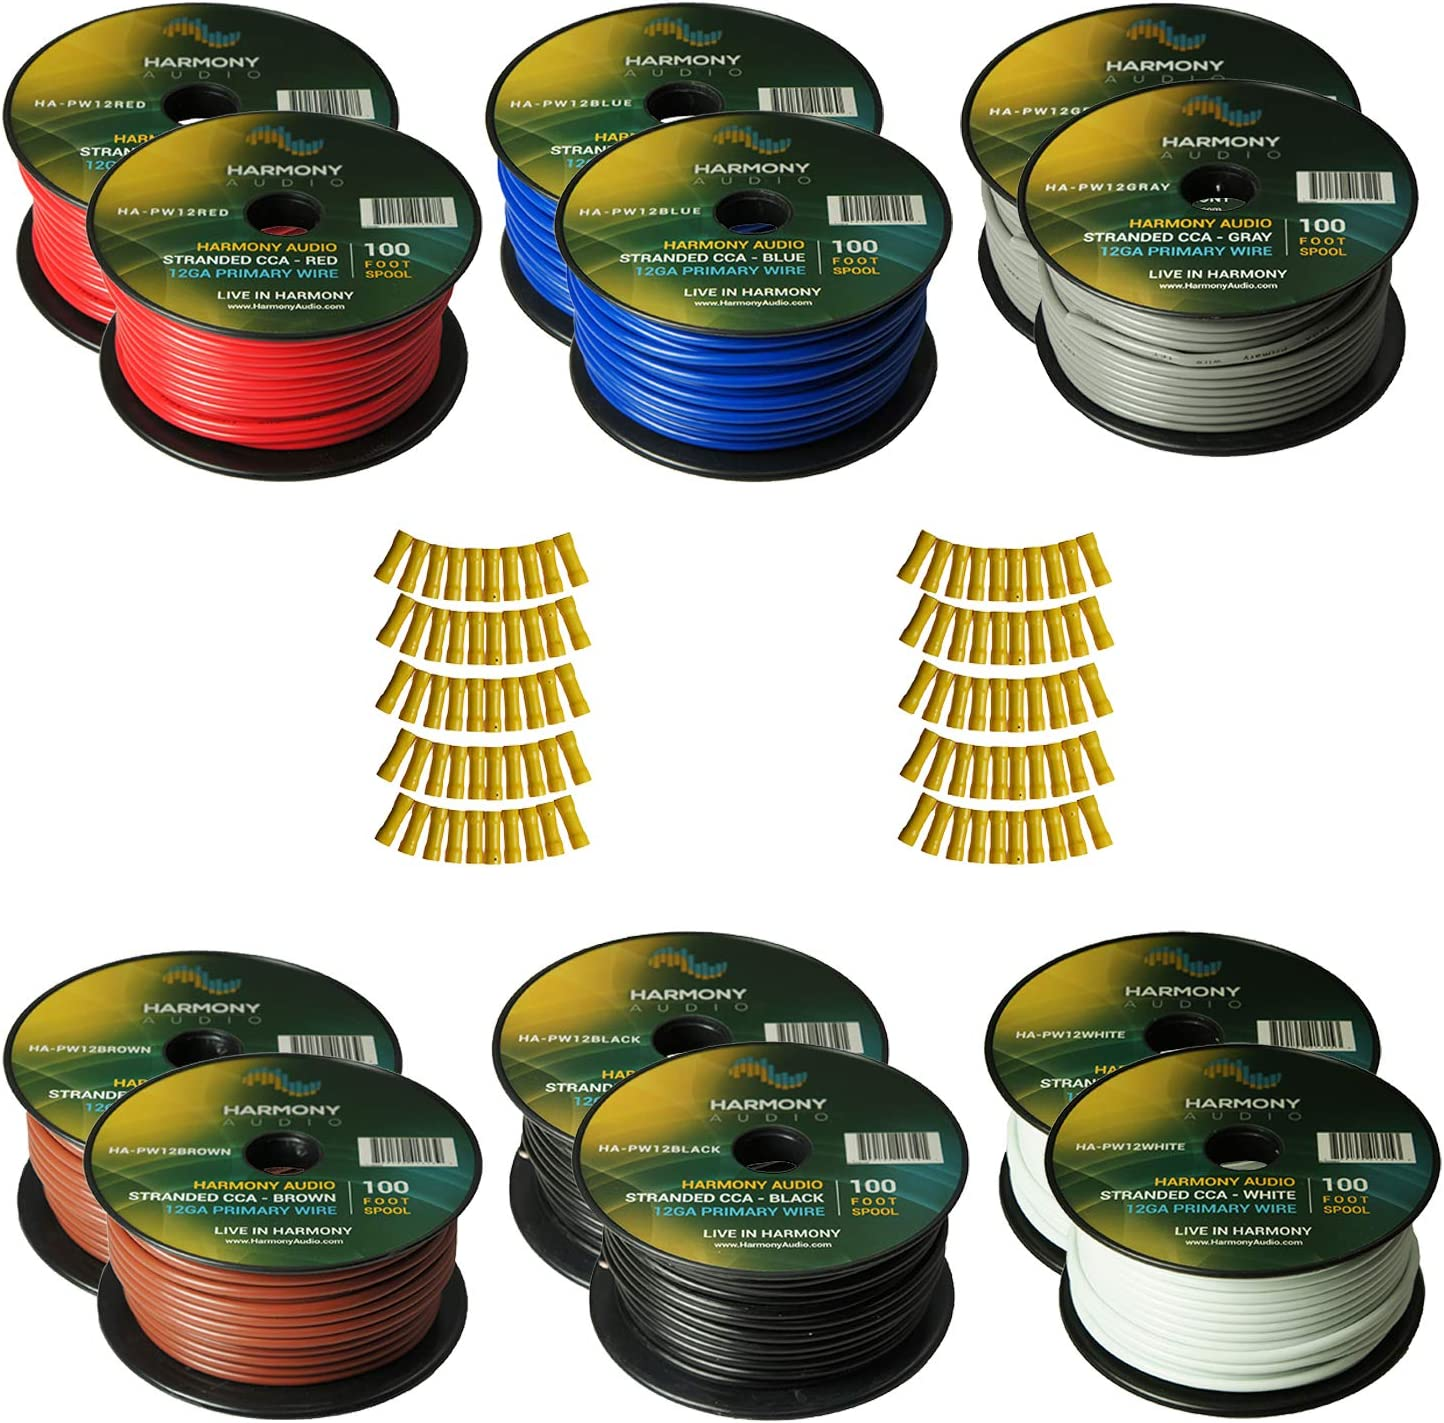 Harmony Audio Primary Single Conductor 12 Gauge Power or Ground Wire - 12 Rolls - 1200 Feet - 6 Color Mix for Car Audio/Trailer/Model Train/Remote